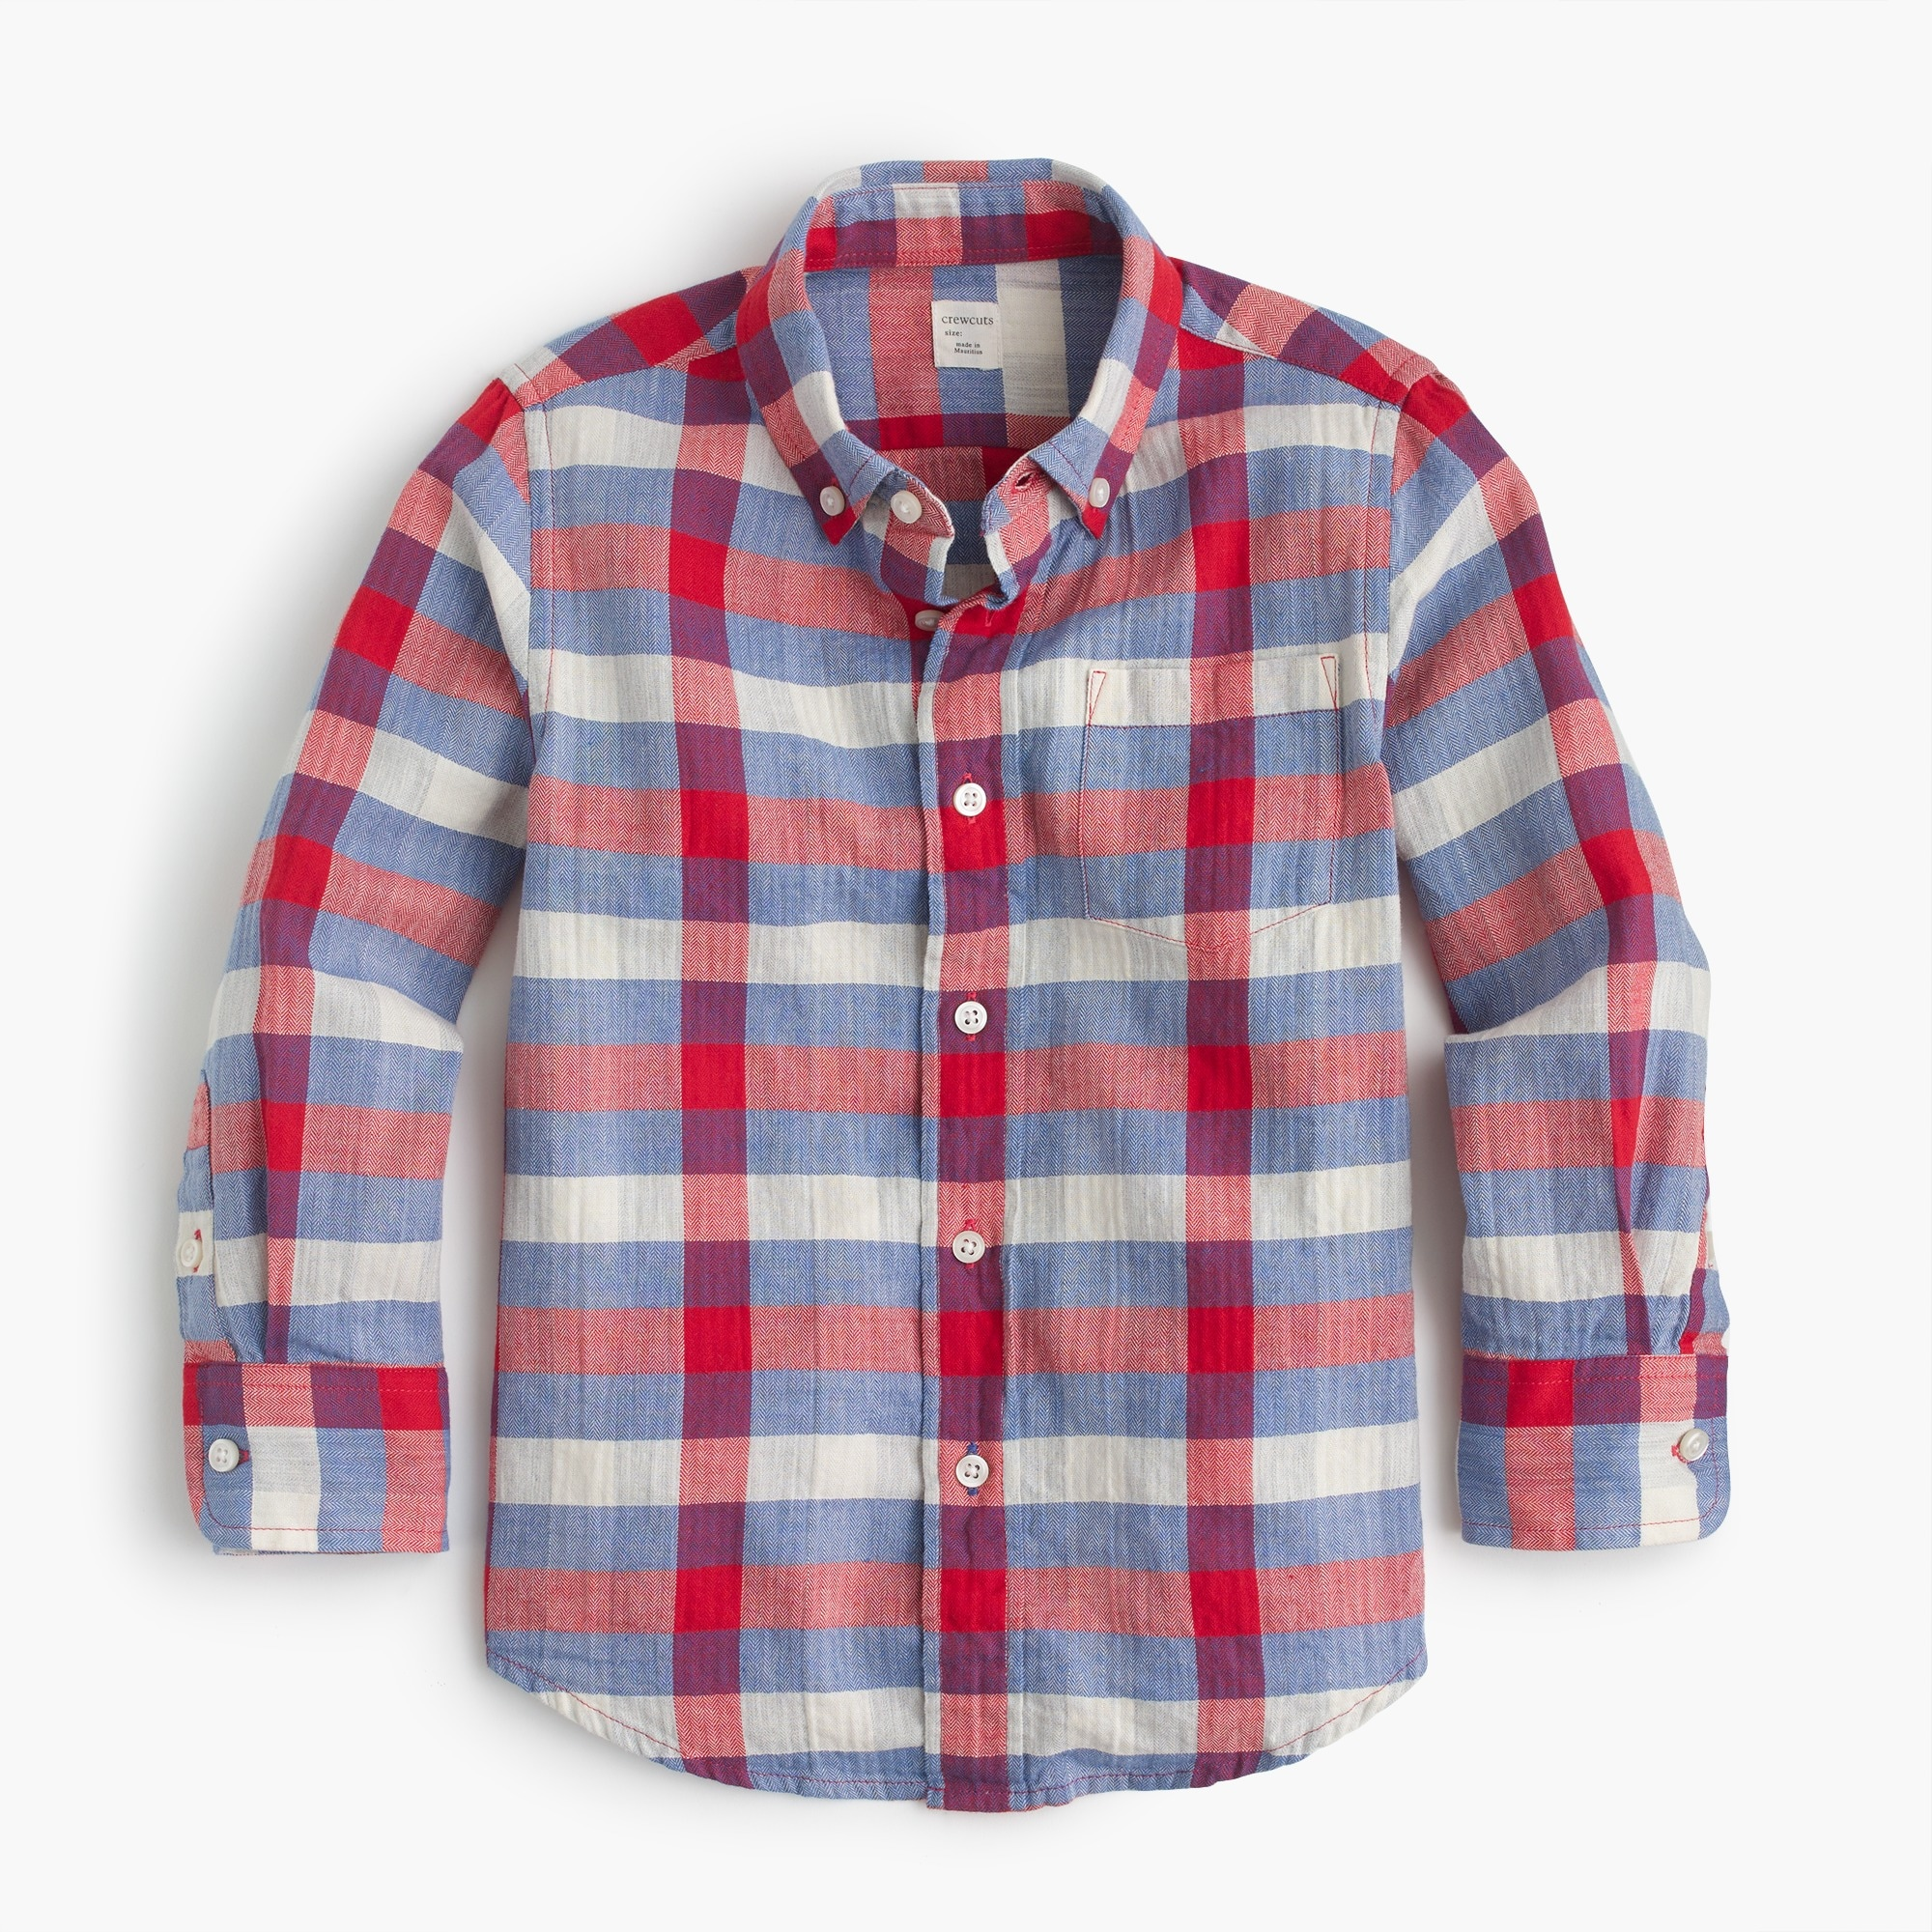 Kids' flannel shirt in herringbone plaid